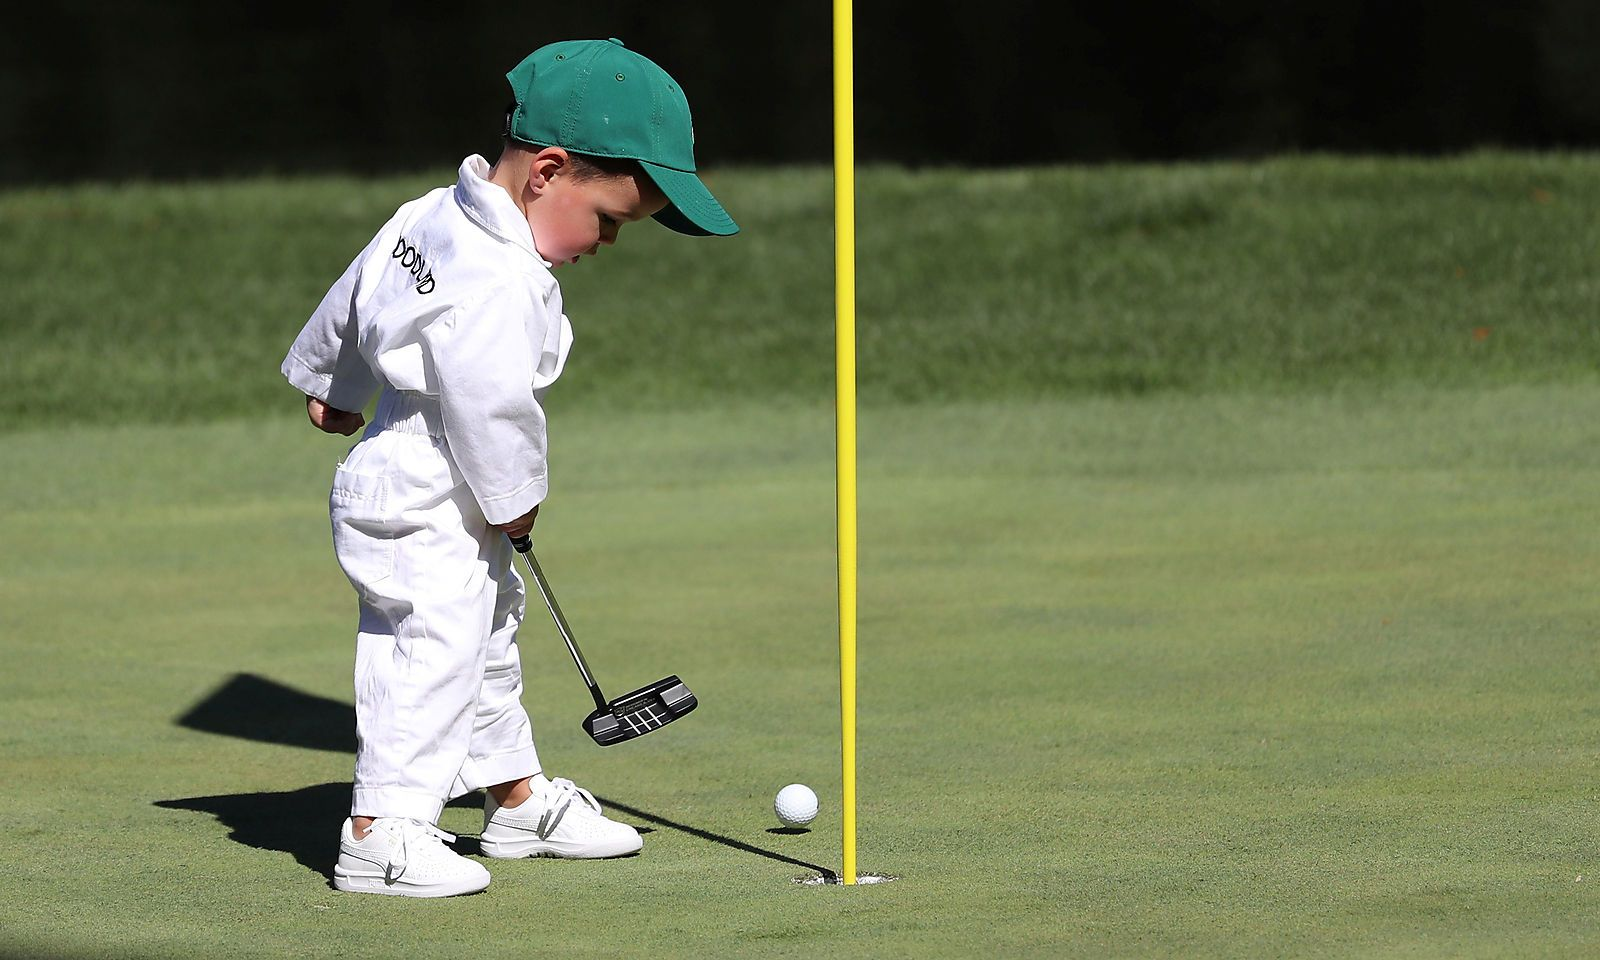 Gary Woodland's son putts on the 9th green during the 2019 Masters golf tournament's par 3 contest at the Augusta National Golf Club in Augusta, Georgia, U.S.